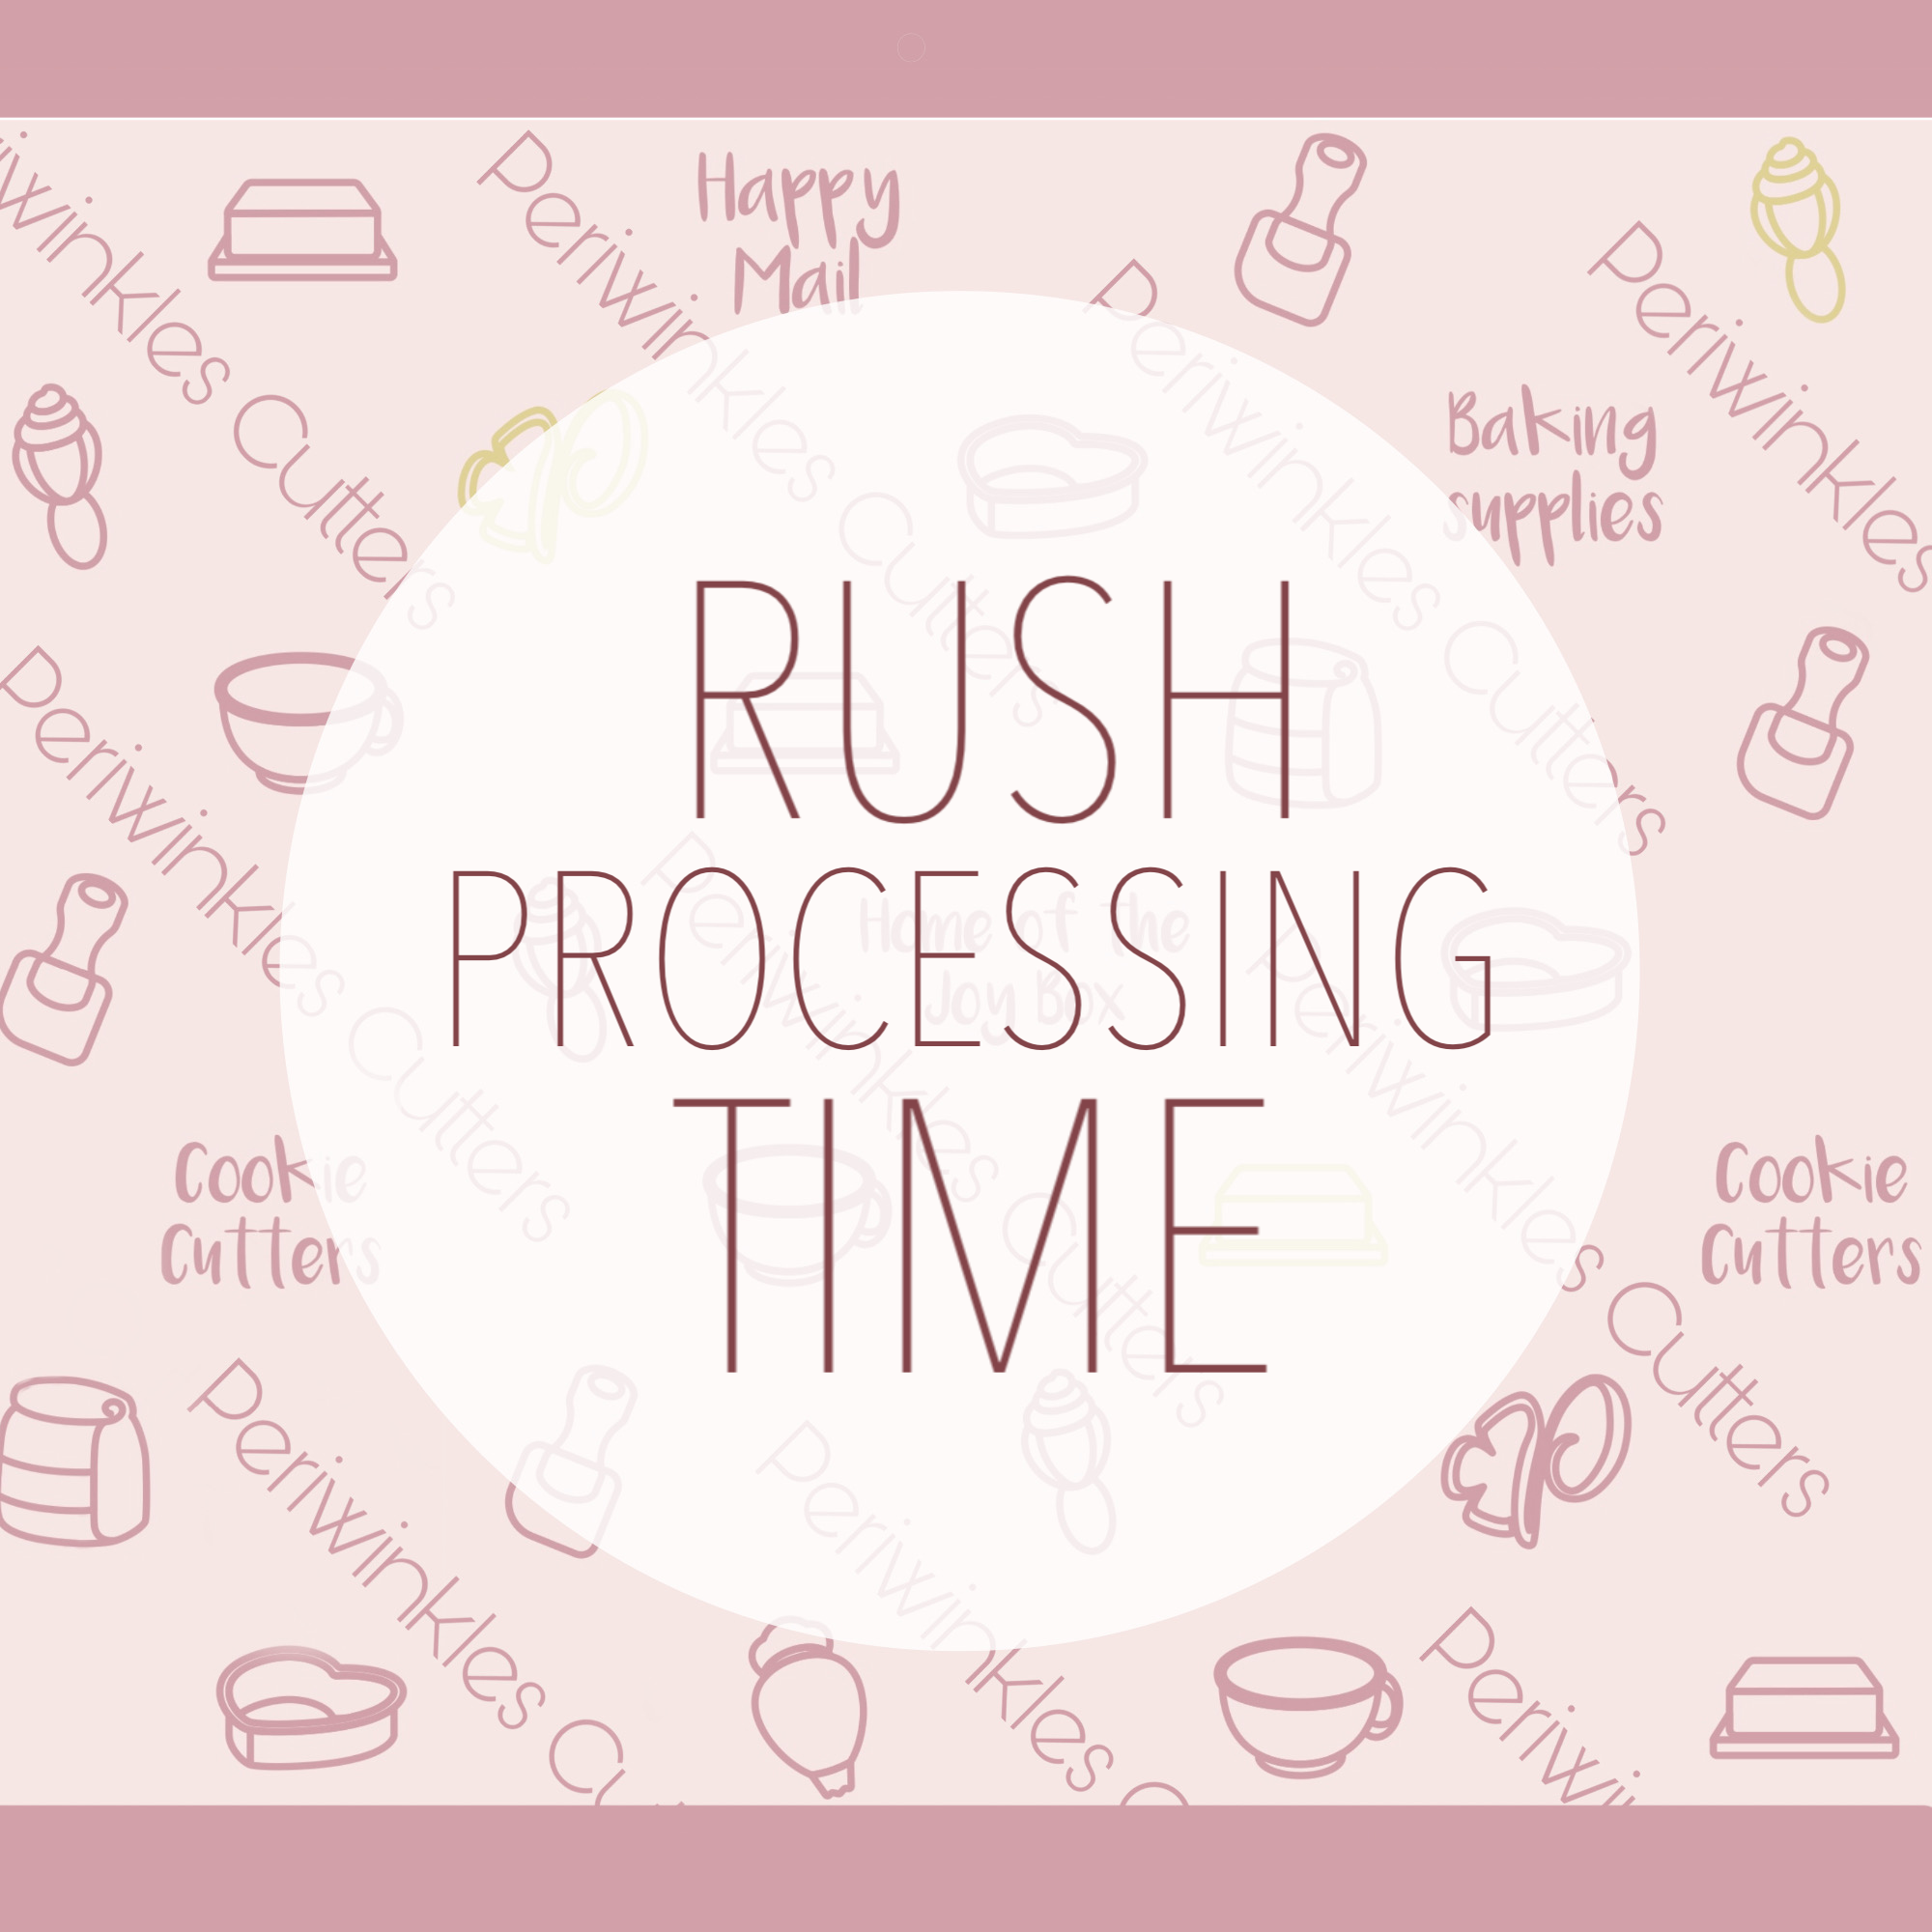 Rush Processing Fee - Periwinkles Cookie Cutters